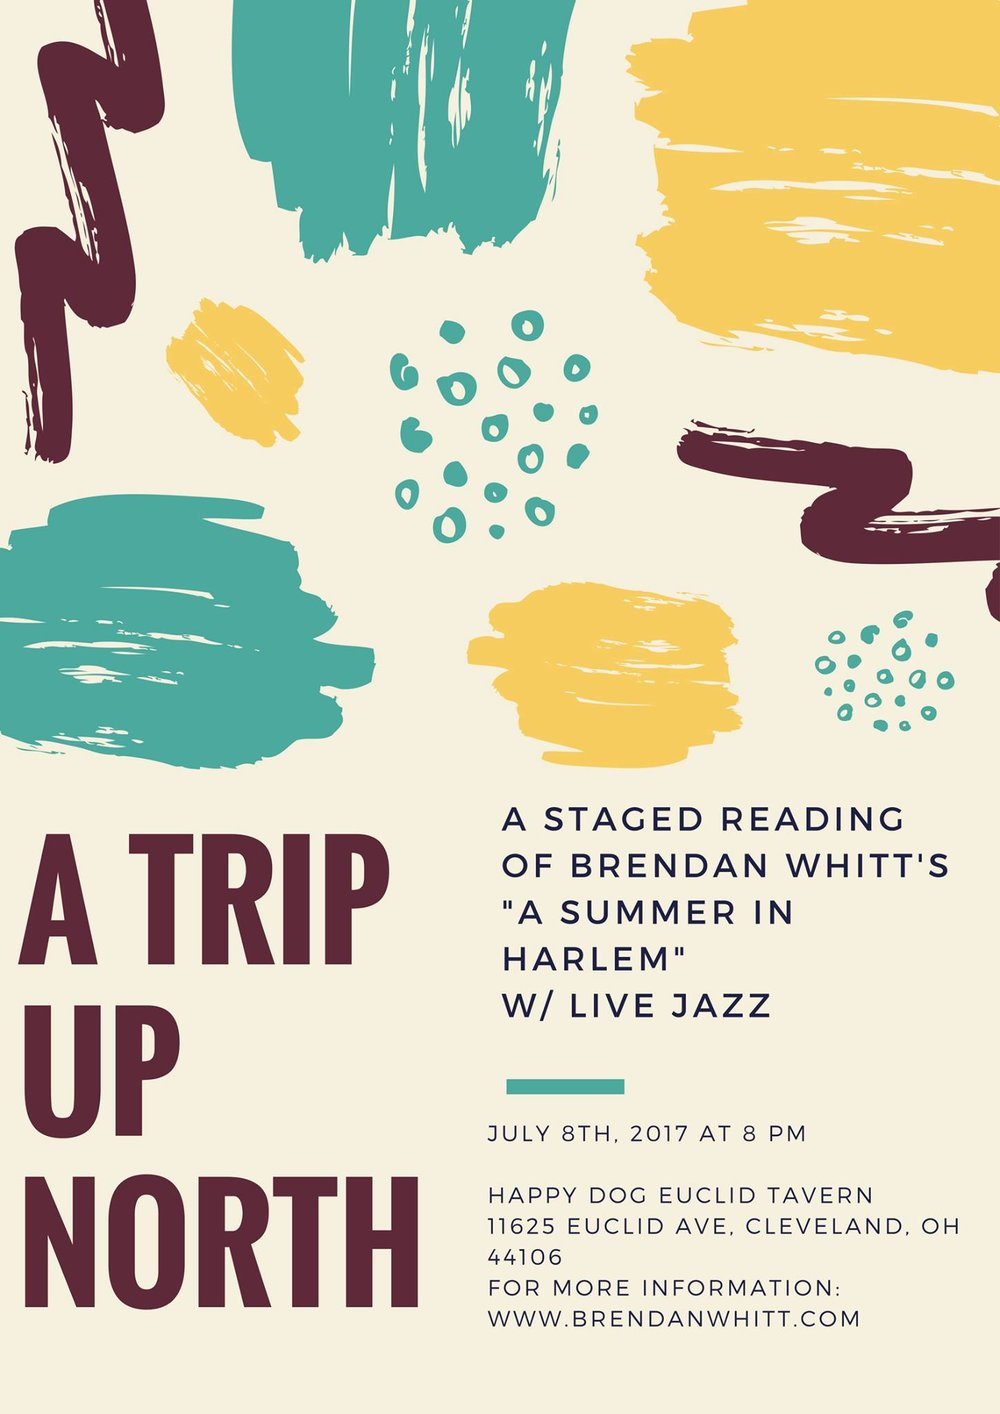 "A Trip Up North is a staged reading of selections from Brendan Whitt's ""A Summer In Harlem"" novella. The reading will feature Cleveland area poets and actors and will be accompanied by live Jazz and music from DJ NuERA"